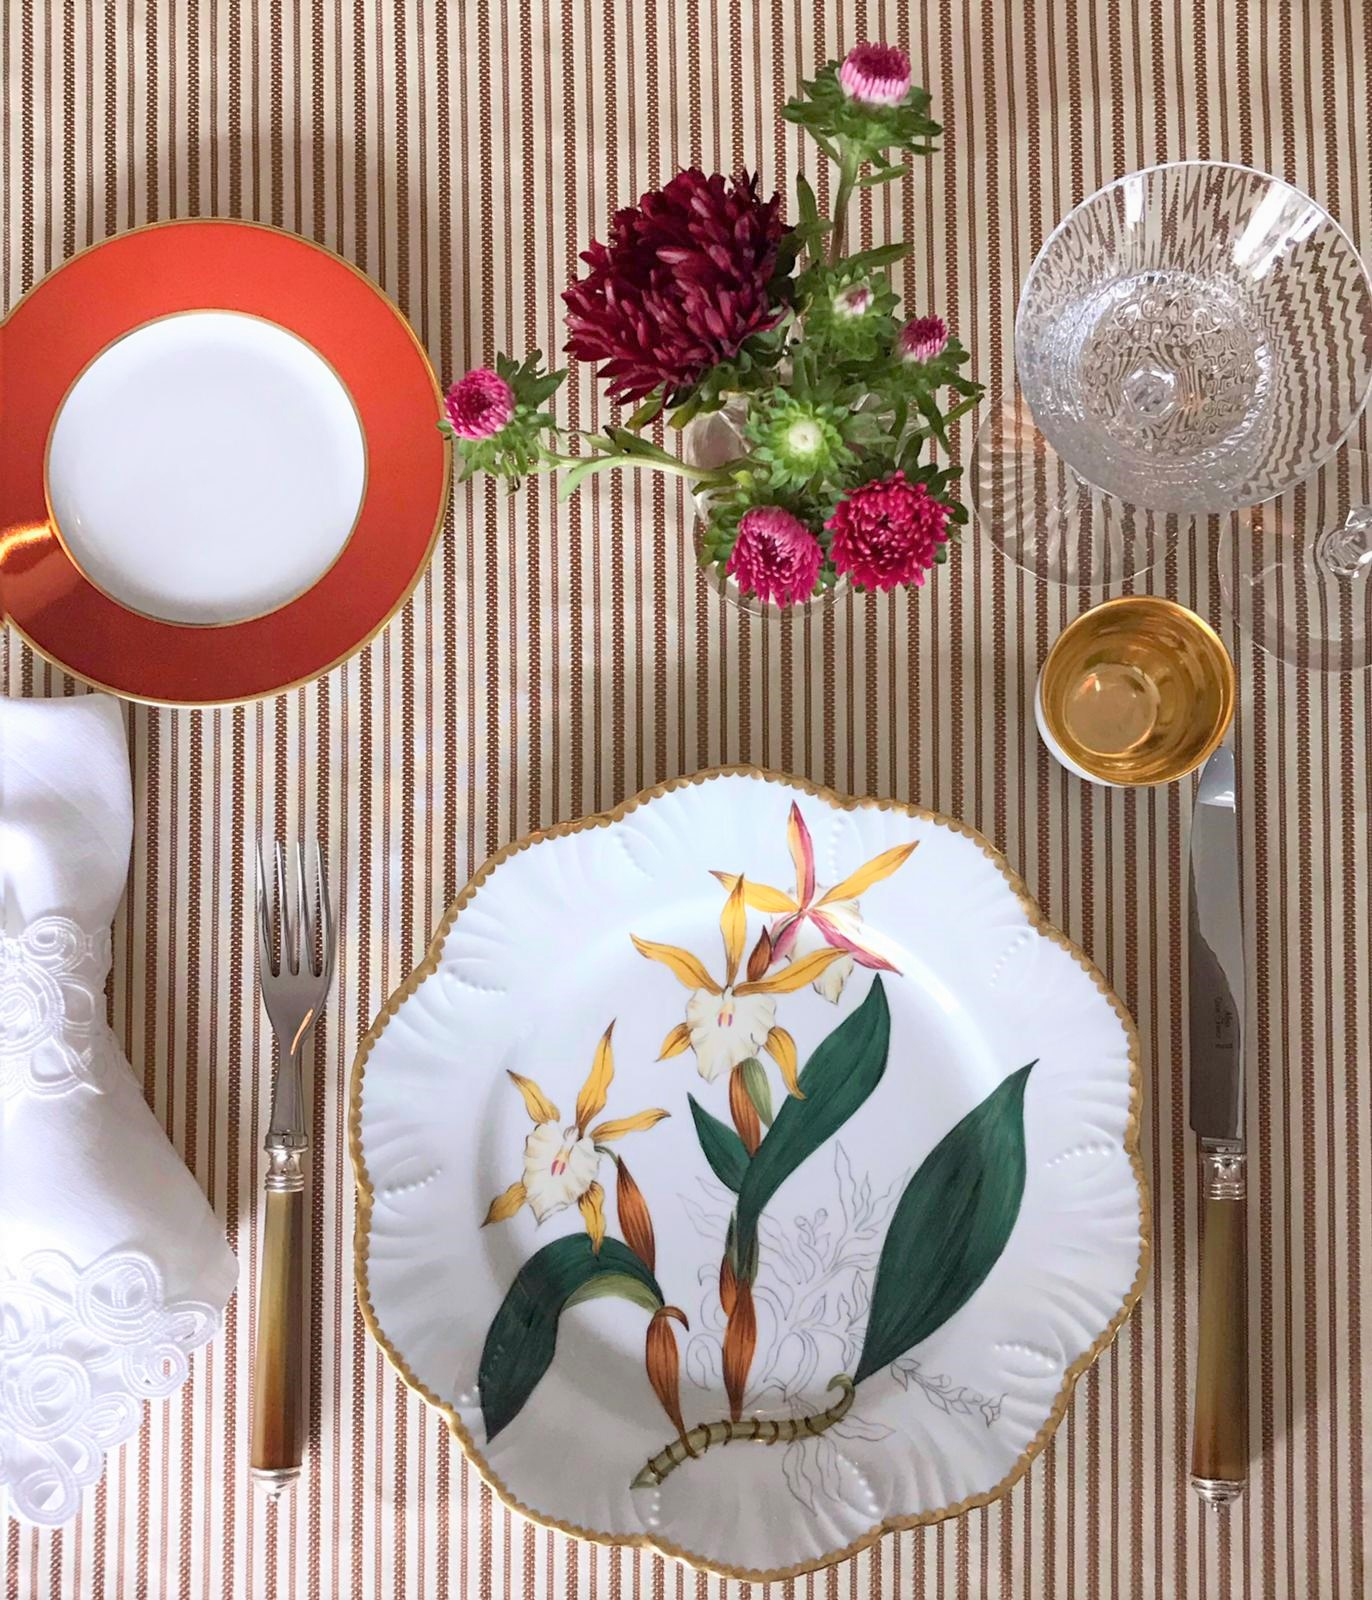 Gemma Martinez de Ana tablesetting